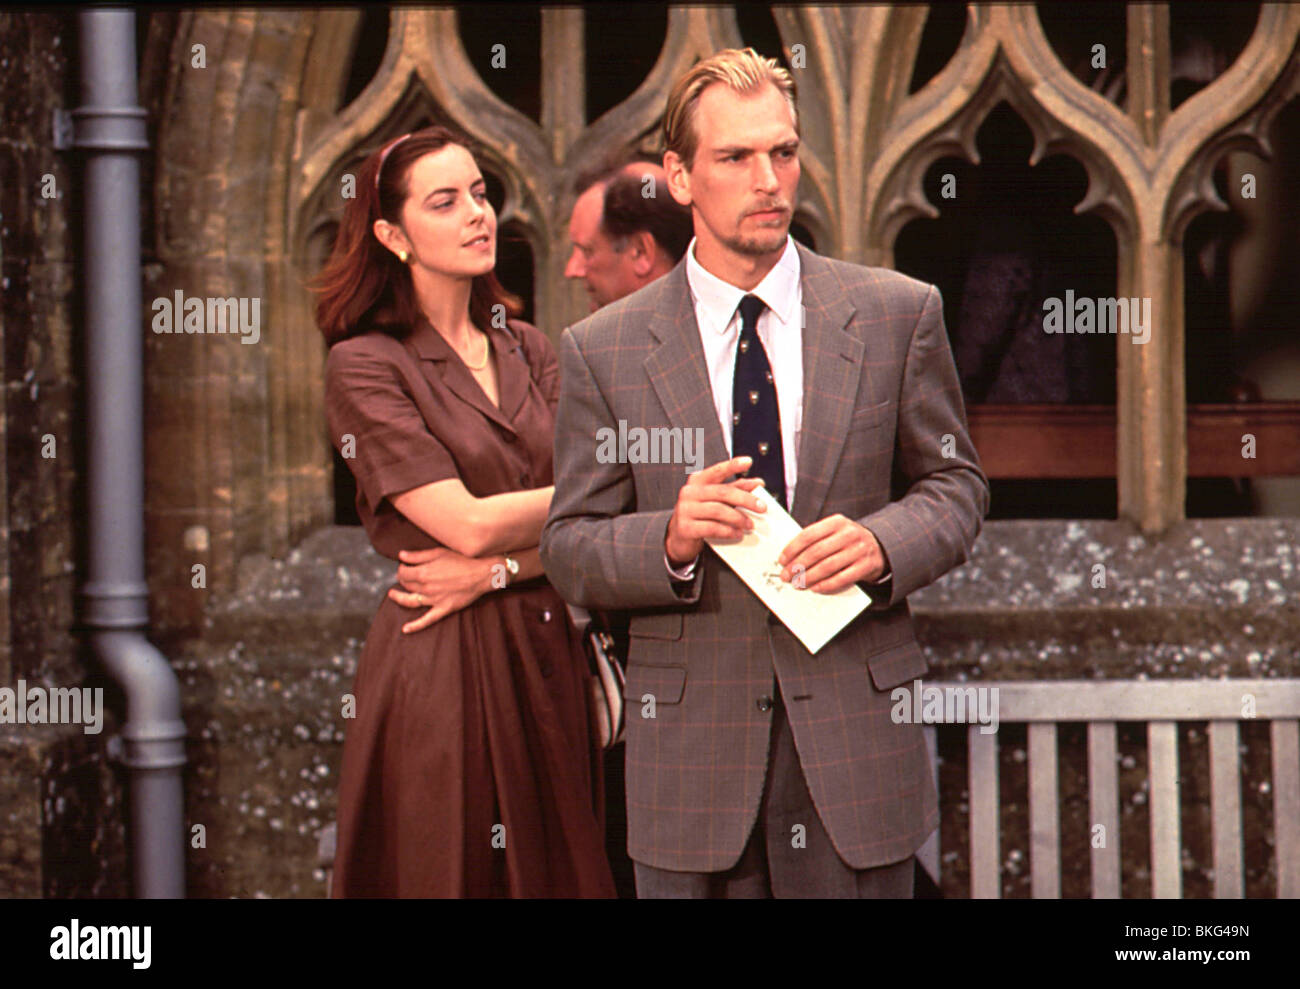 THE BROWNING VERSION (1993) GRETA SCACCHI, JULIAN SANDS BRWV 002 - Stock Image